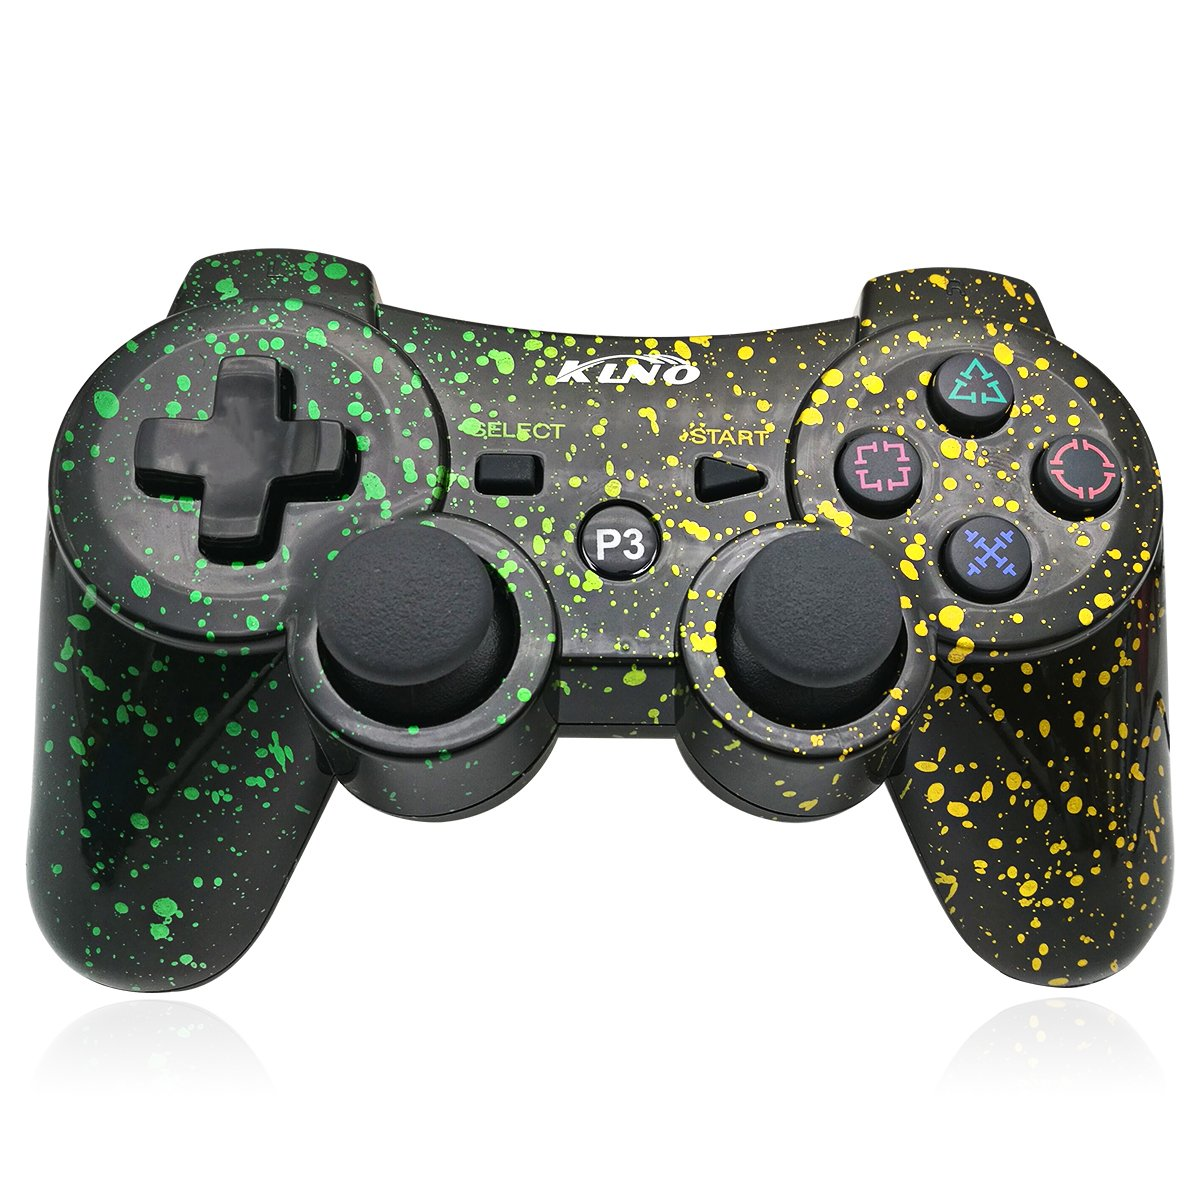 PS3 Controller Wireless Dualshock Joystick - KLNO Bluetooth Gamepad Sixaxis, Super power, USB Charger, Sixaxis, Dualshock3 including 1 cable (Spot Art Color) by KLNO (Image #1)